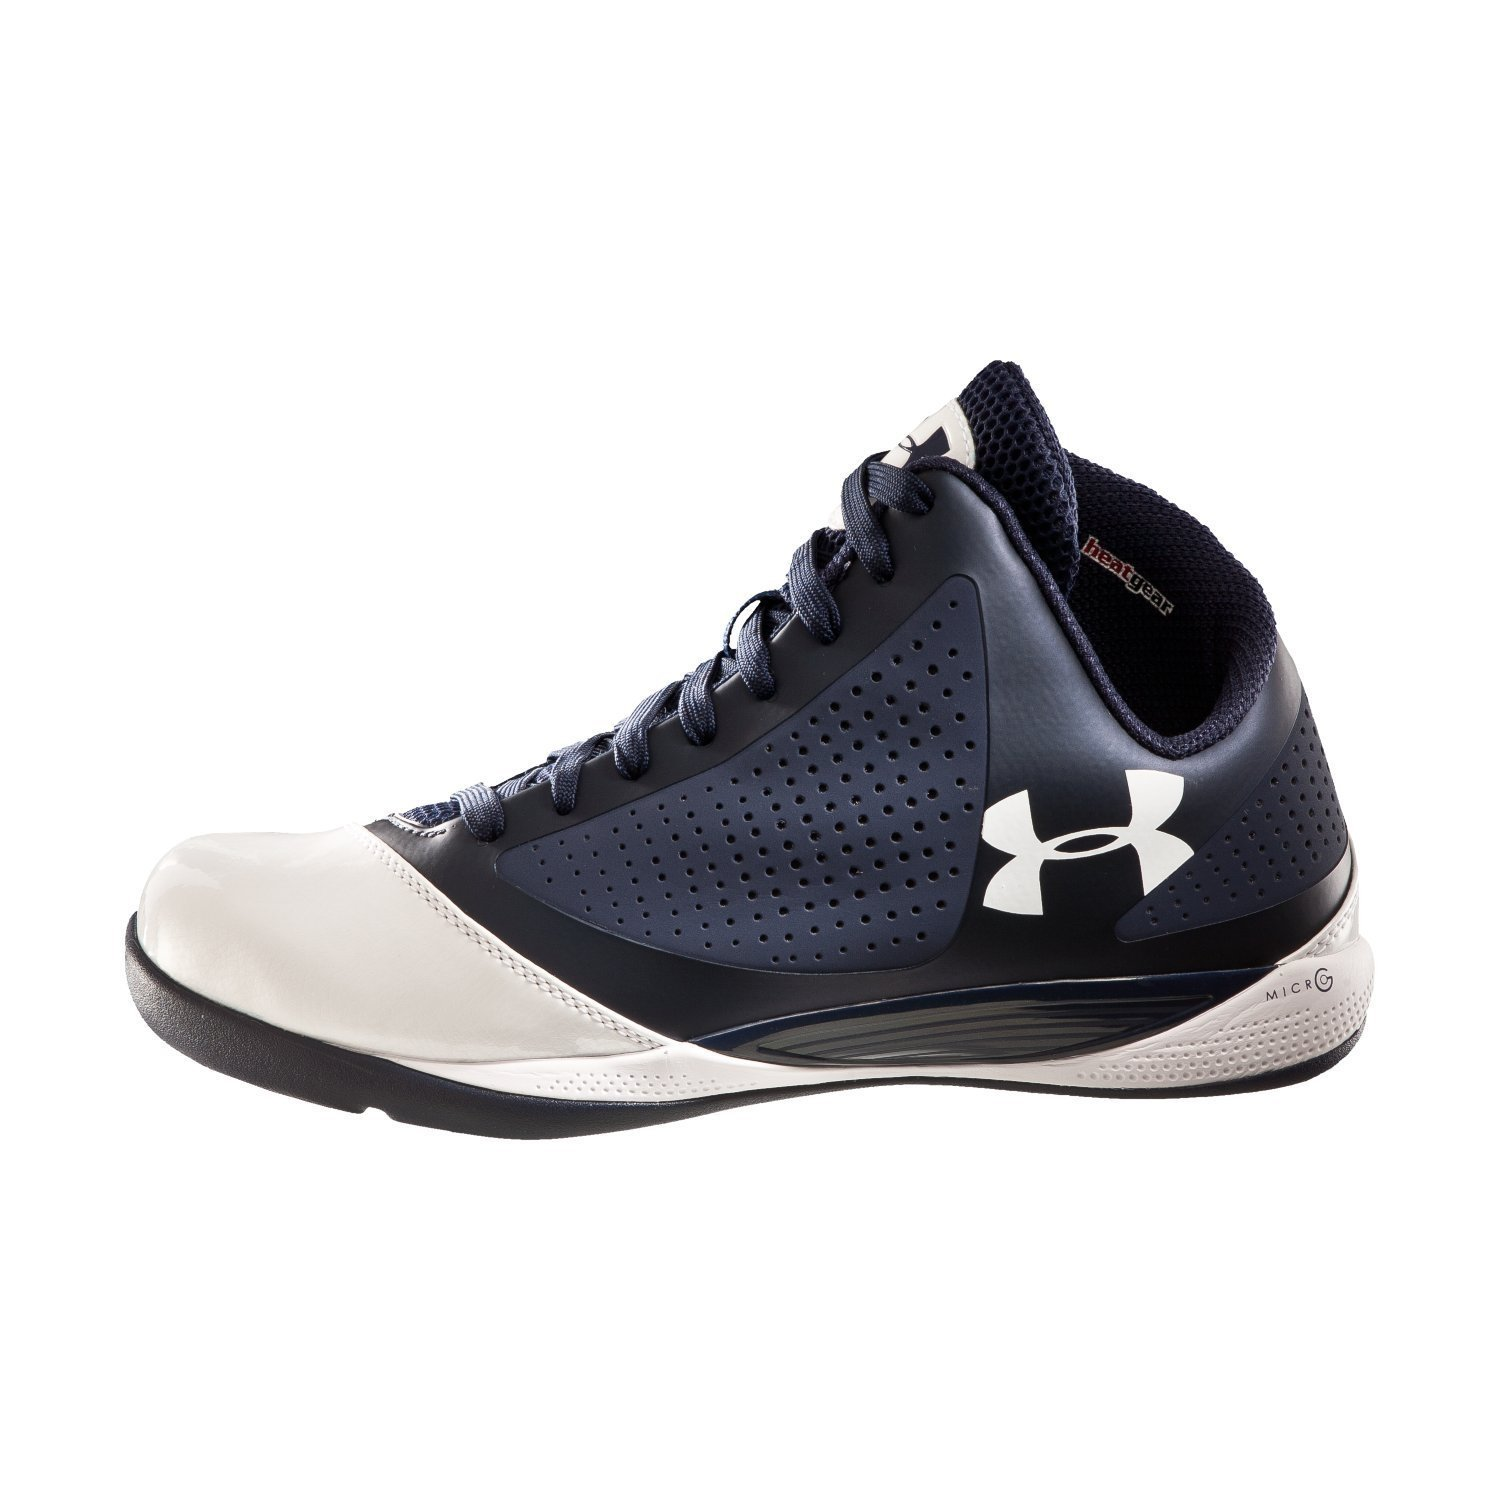 Under Armour Micro G Supersonic